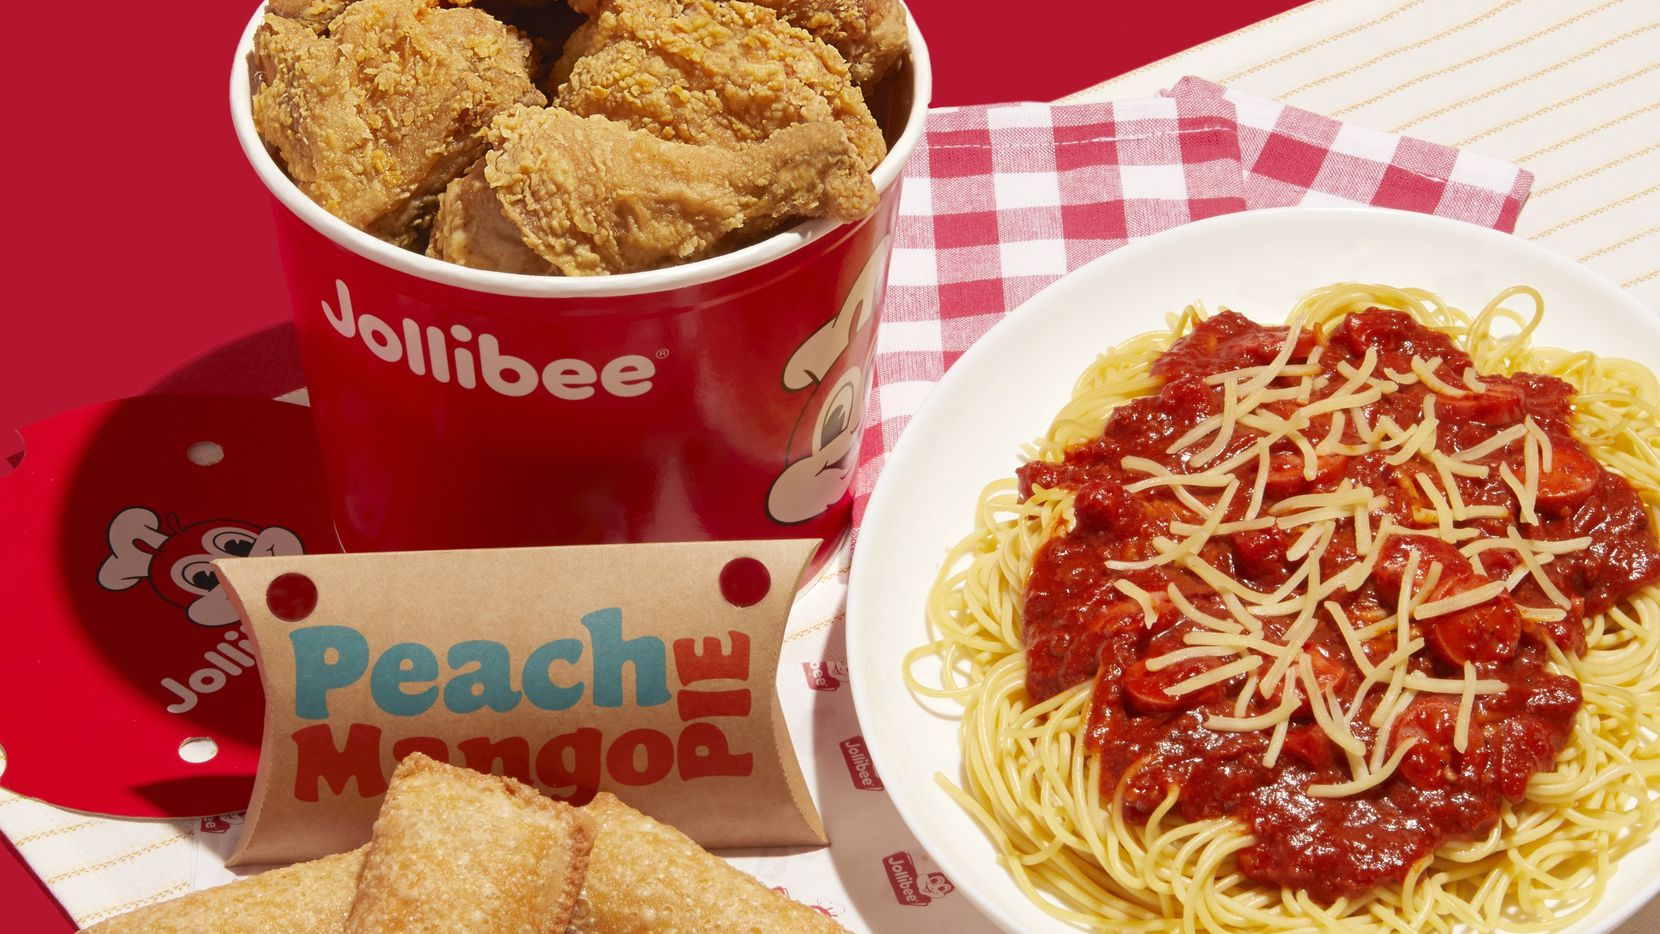 Jollibee is the Philippines' largest fast-food chain.